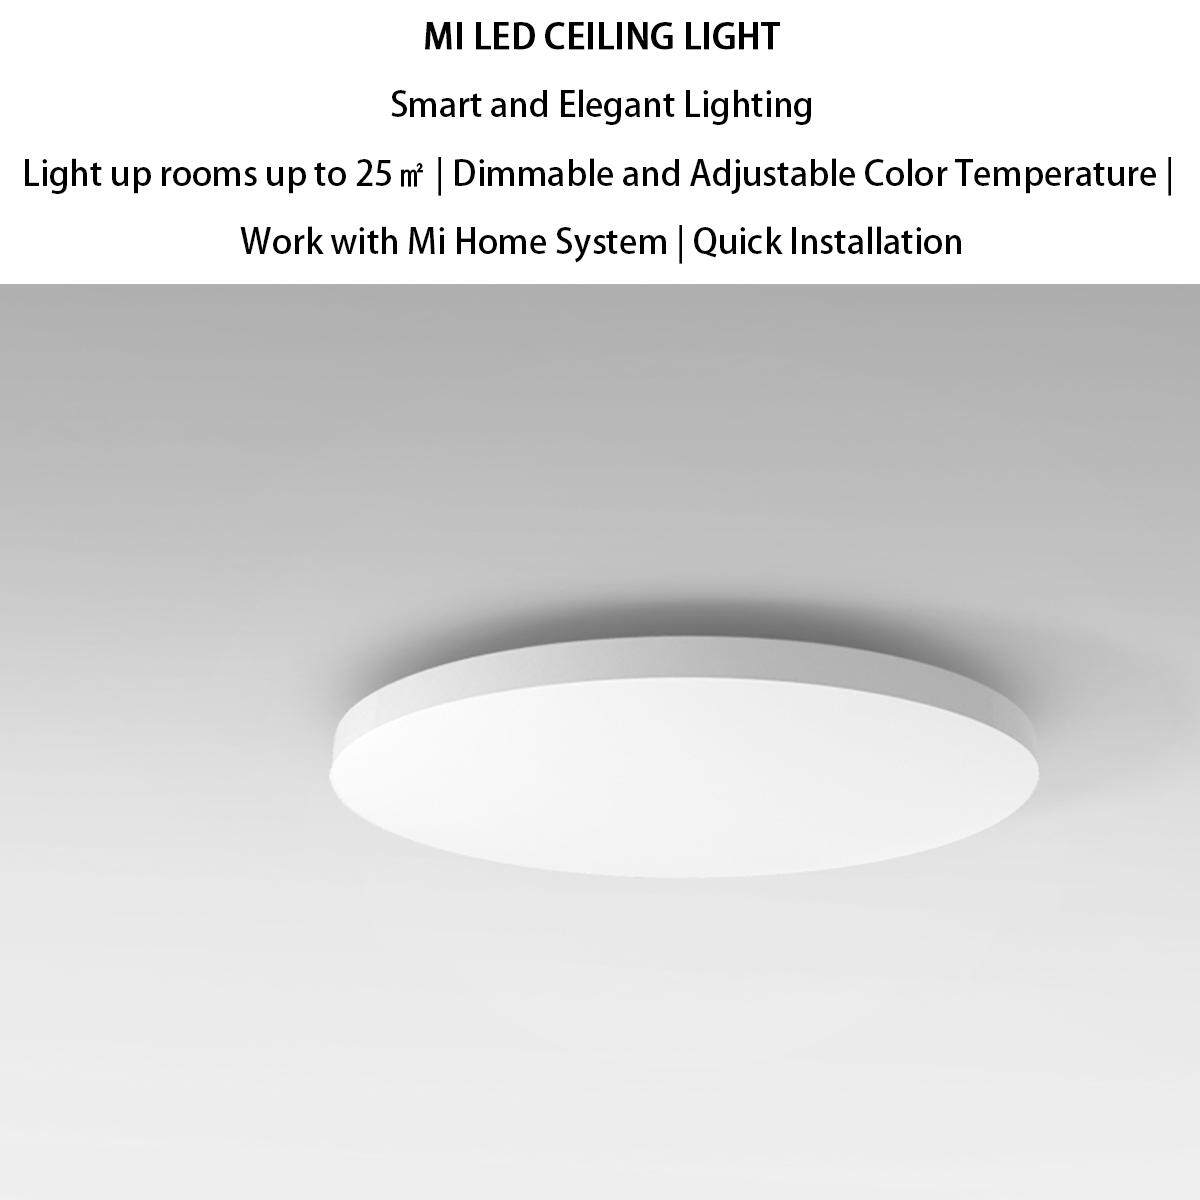 XIAOMI MIJIA Yeelight Led Ceiling 32W Work To Mi Home App For Xiaomi smart  home kits【100% ORIGINAL】